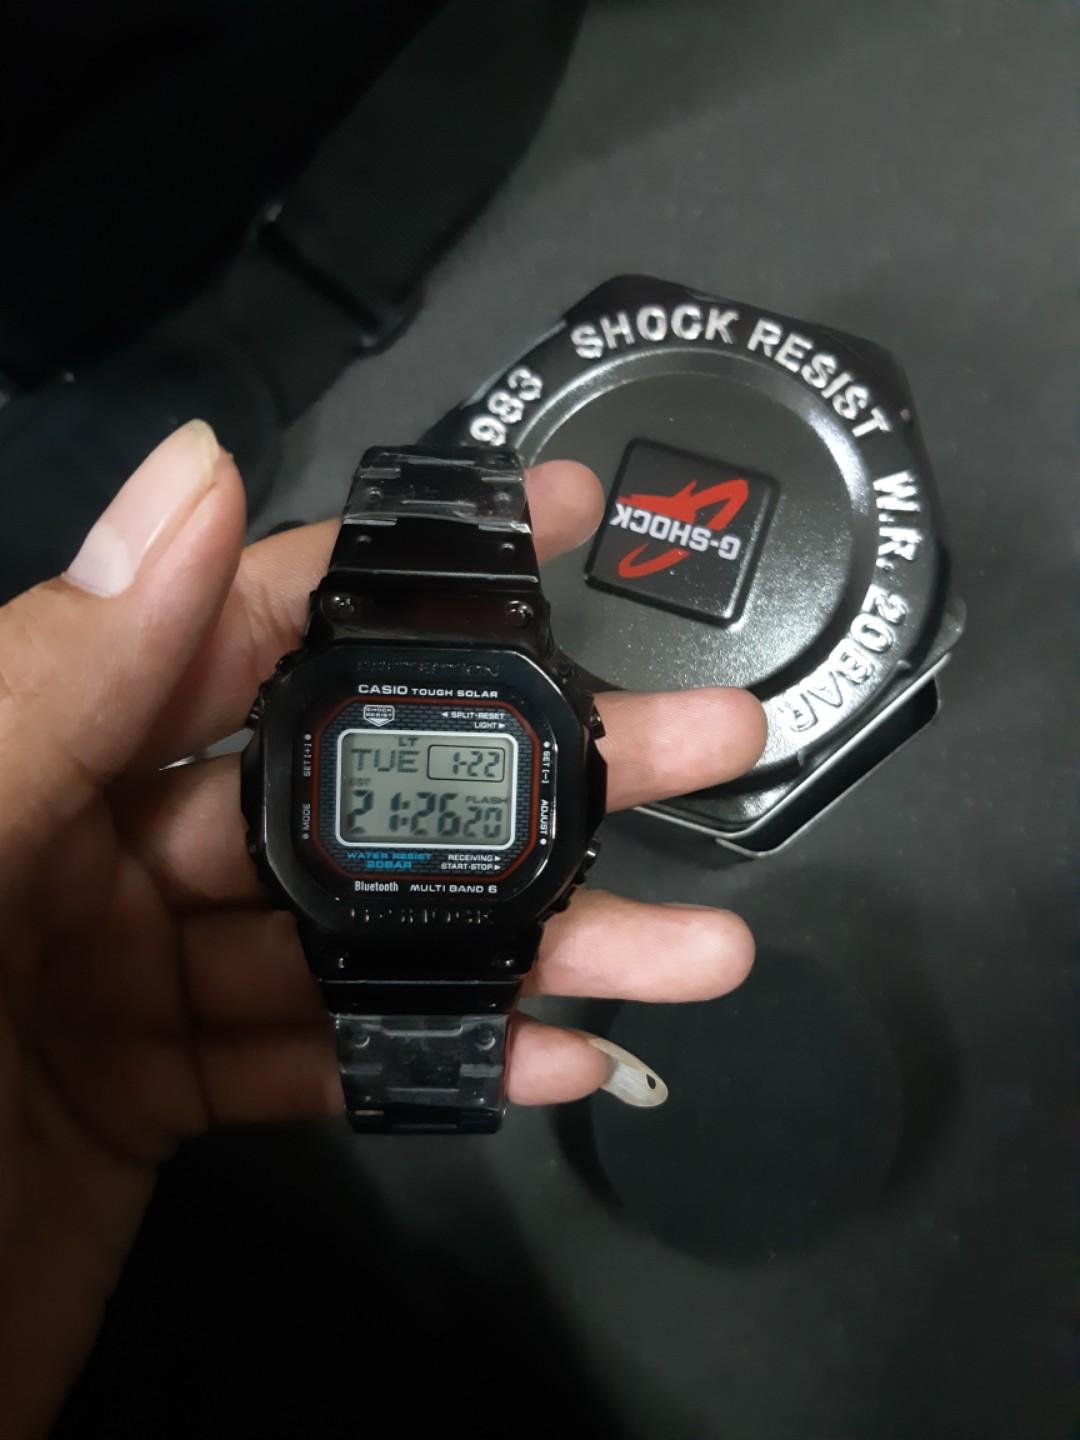 Jam G-shock GMWB-5000 full metal Silver special Anniversary g shock